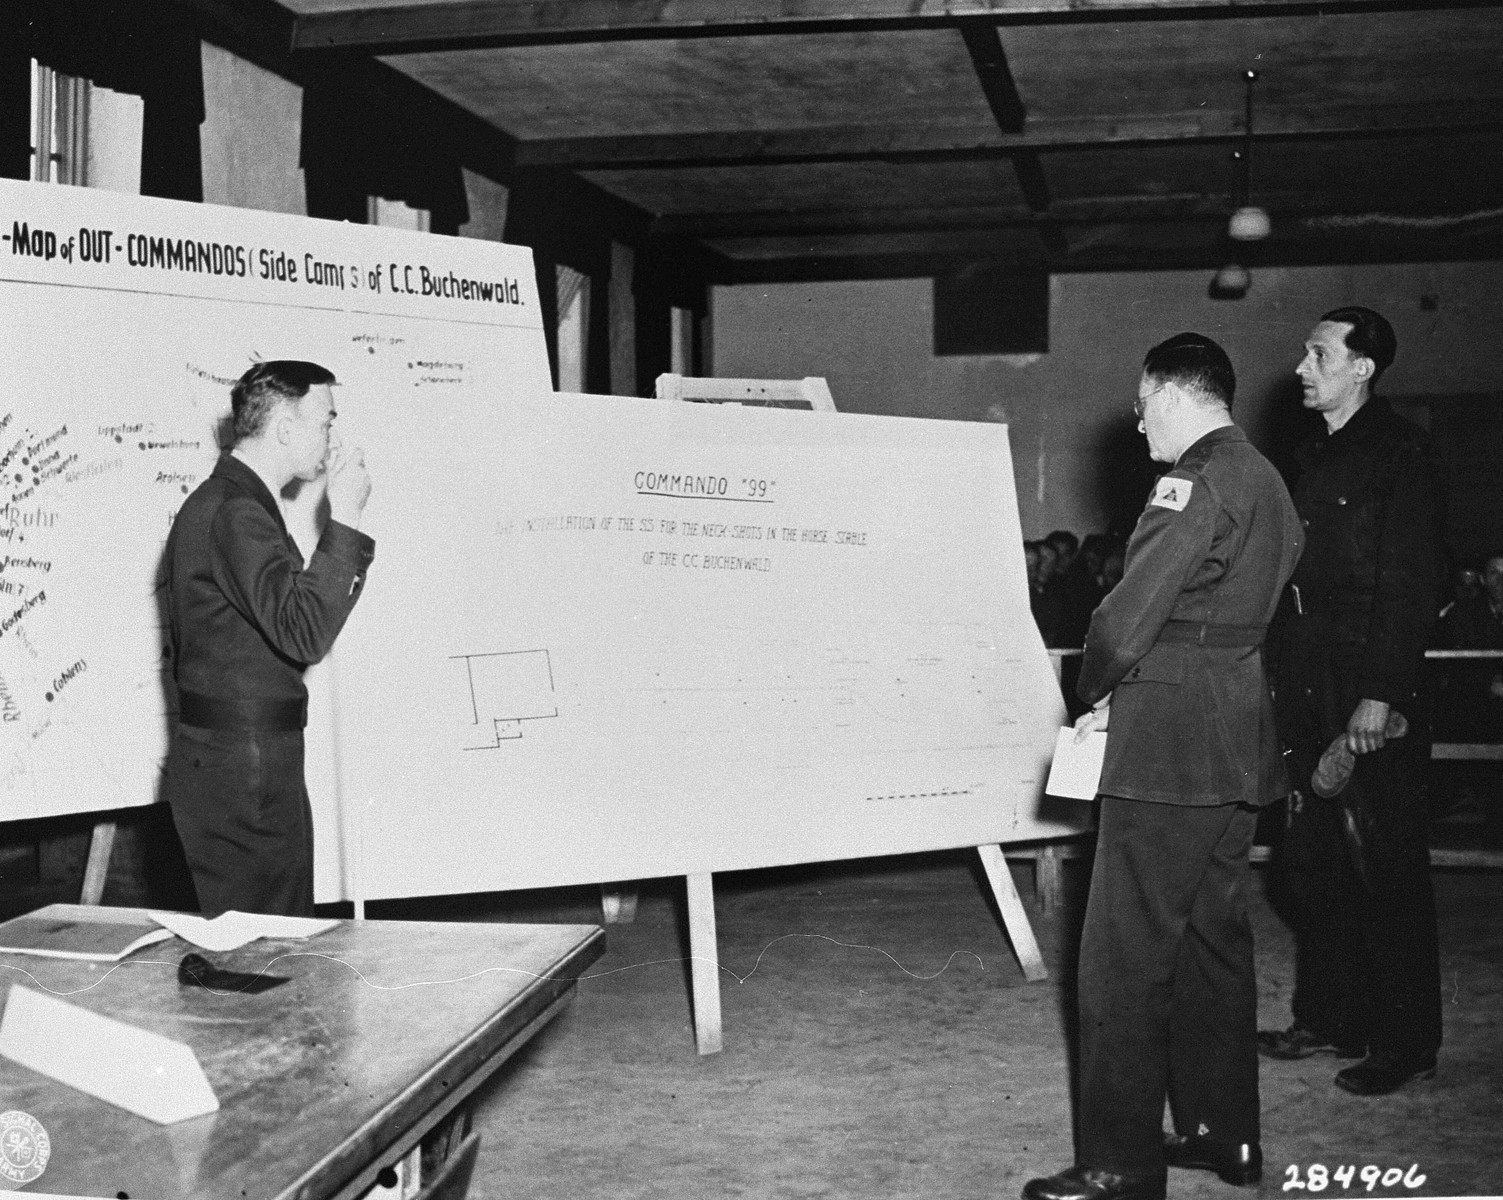 Horst Dittrich (right), a witness for the prosecution, identifies a diagram of a stable where prisoners were shot, at the trial of former camp personnel and prisoners from Buchenwald.   Looking on are lead U.S. Prosecutor William Denson (left) and interpreter Rudloph Nathanson (center).